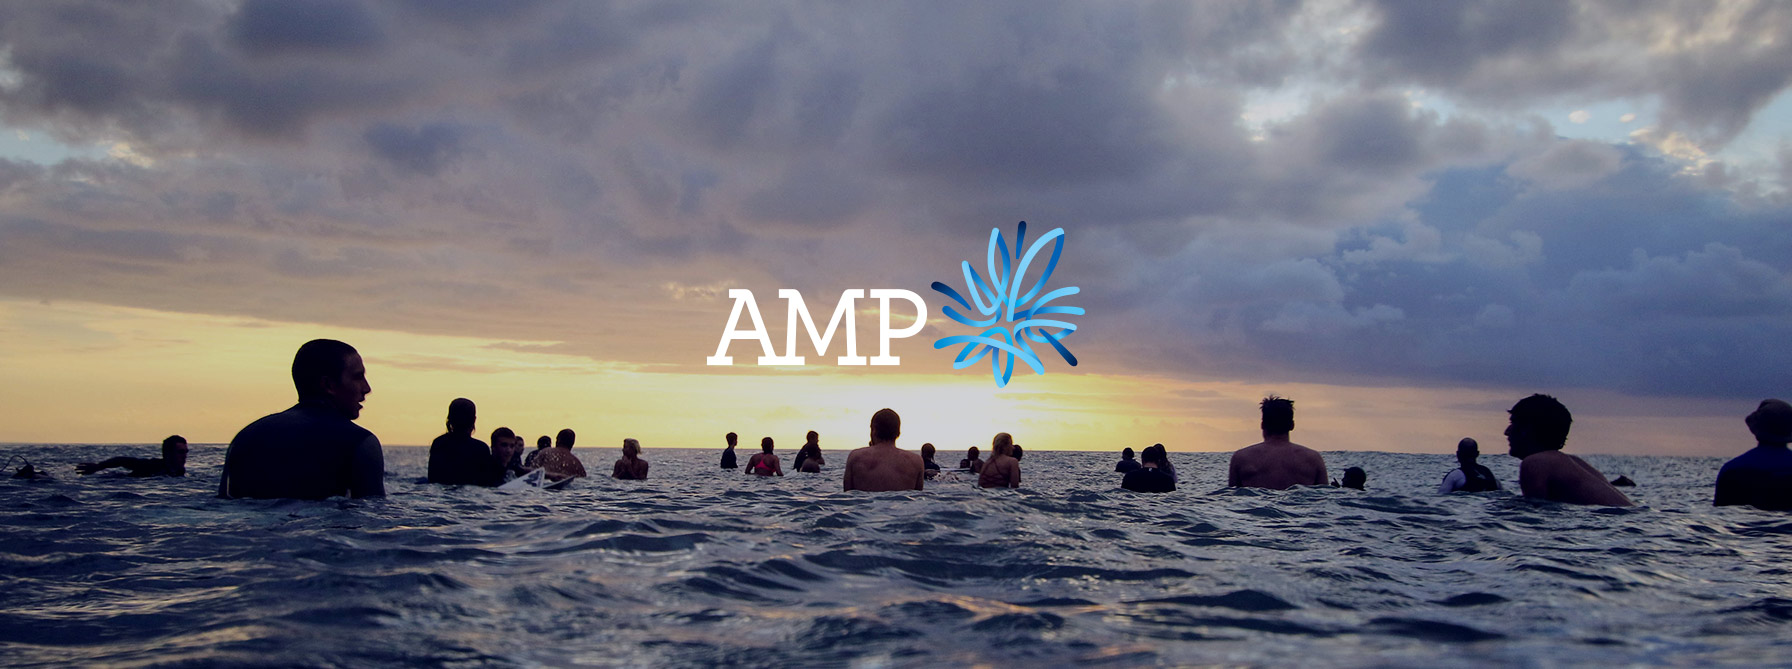 6 ways AMP is nailing it at financial content marketing